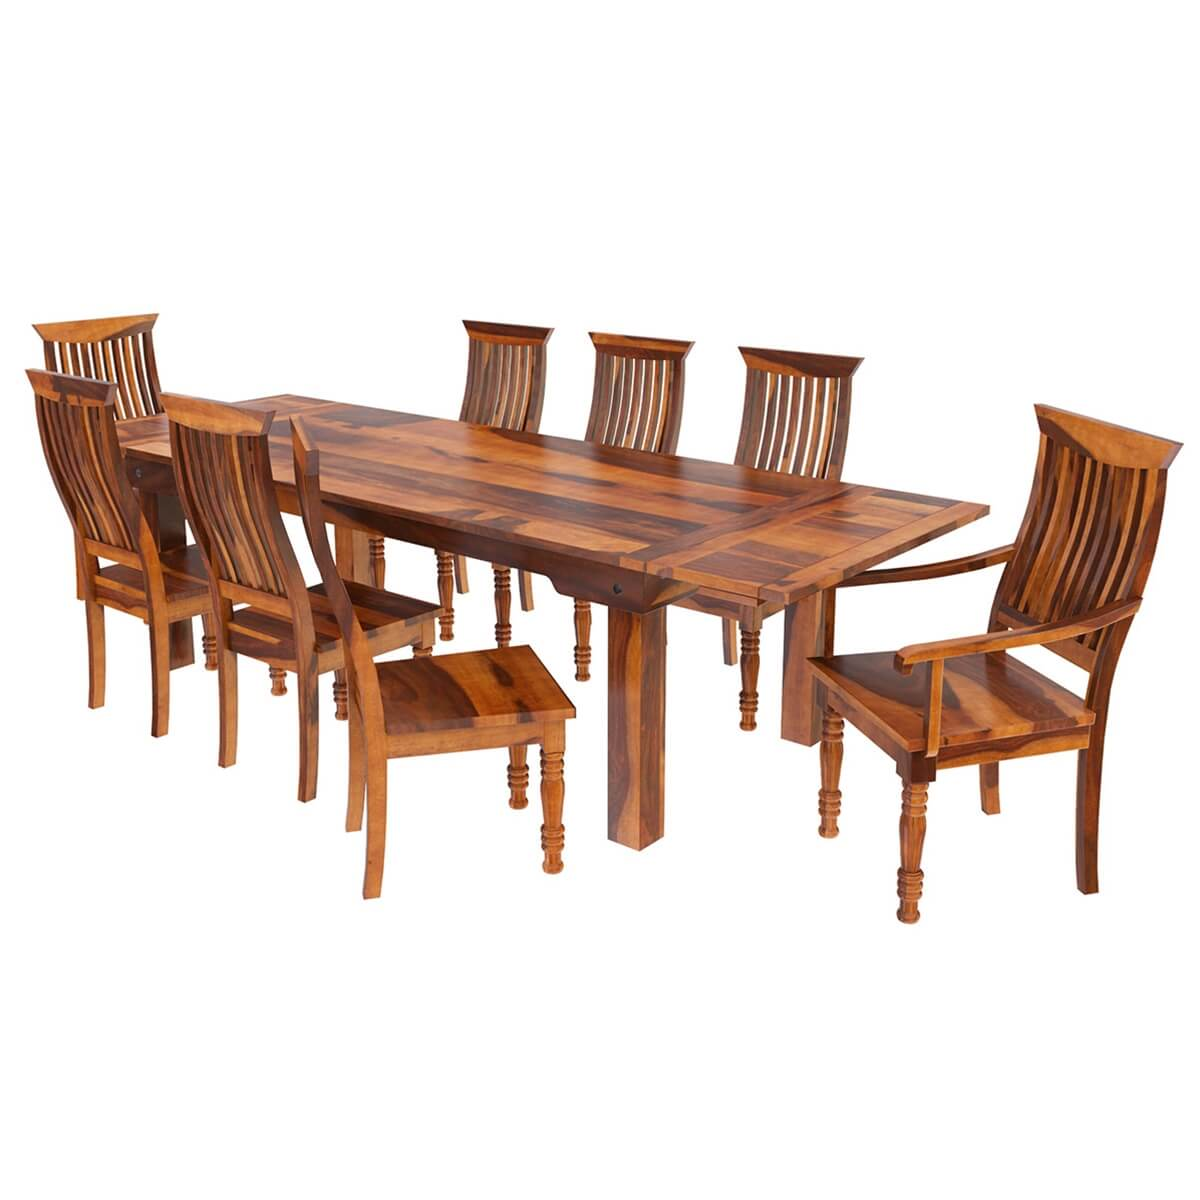 Mediterranean Style Dining Room Sets: Rustic Mediterranean Eco Dining Table & Chair Set W Extensions